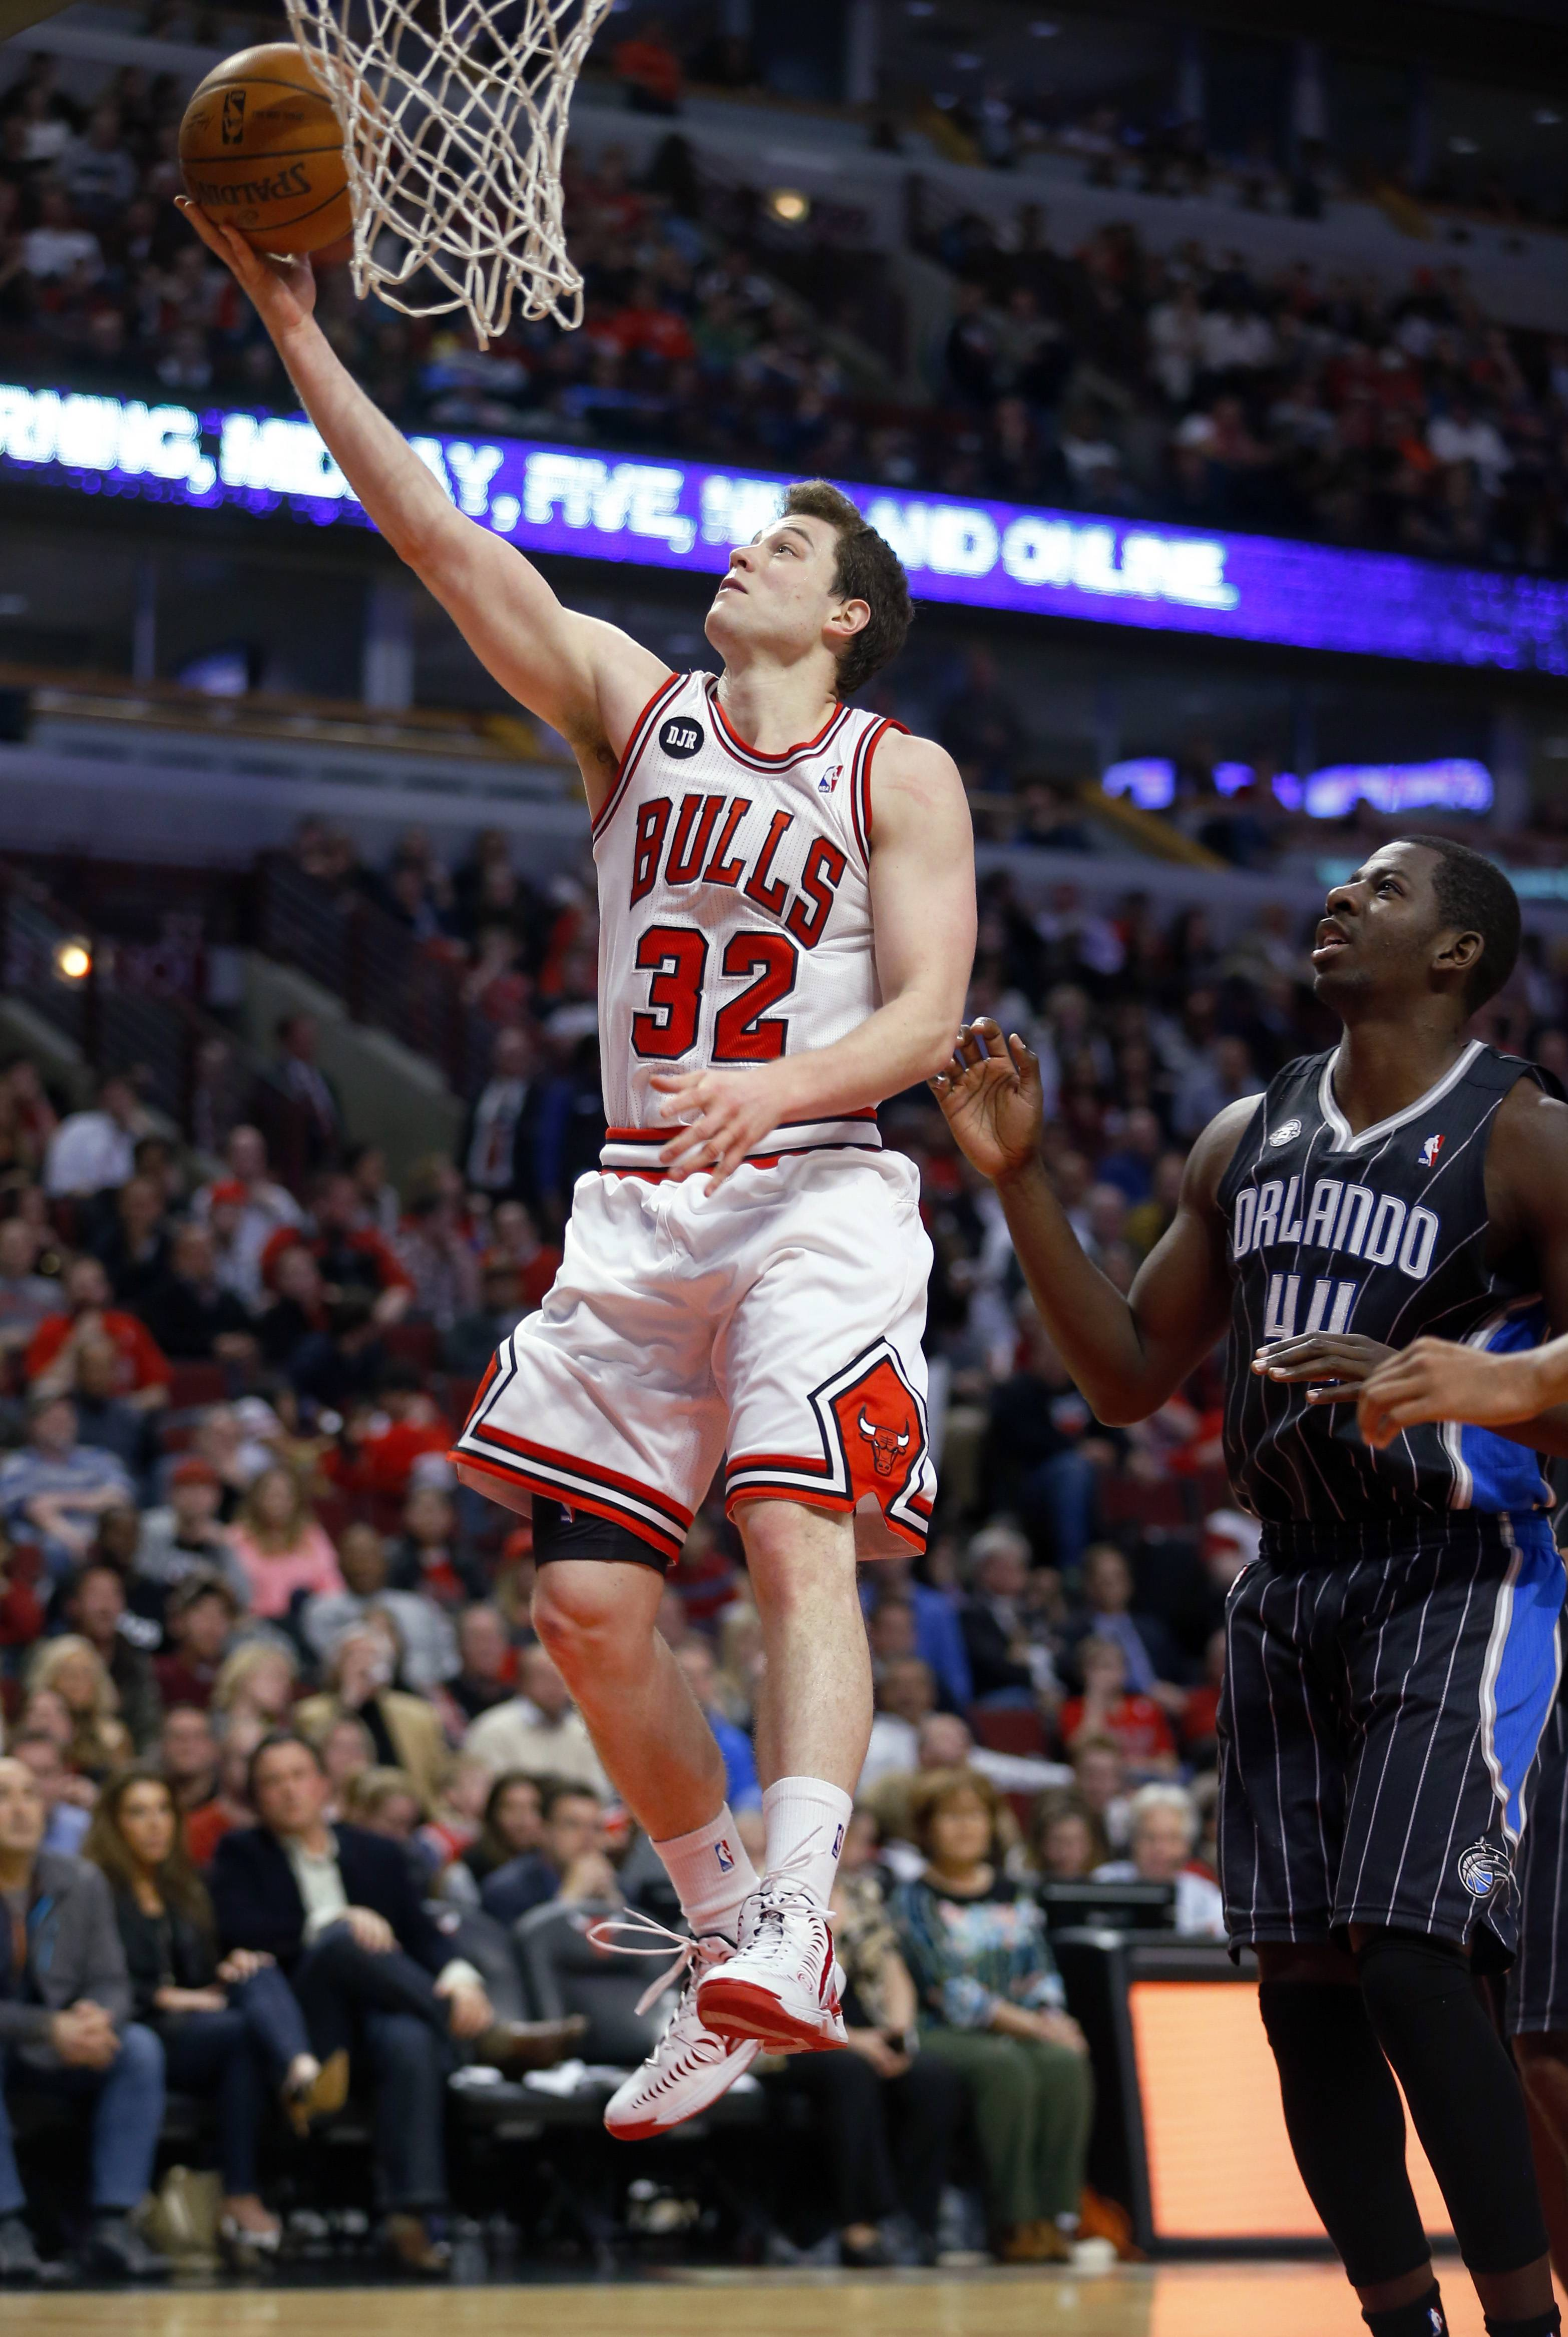 Chicago Bulls guard Jimmer Fredette (32) goes in for a lay-up past Orlando Magic forward Andrew Nicholson (44) during the second half of an NBA basketball game Monday in Chicago. The Bulls won the game 108-95.